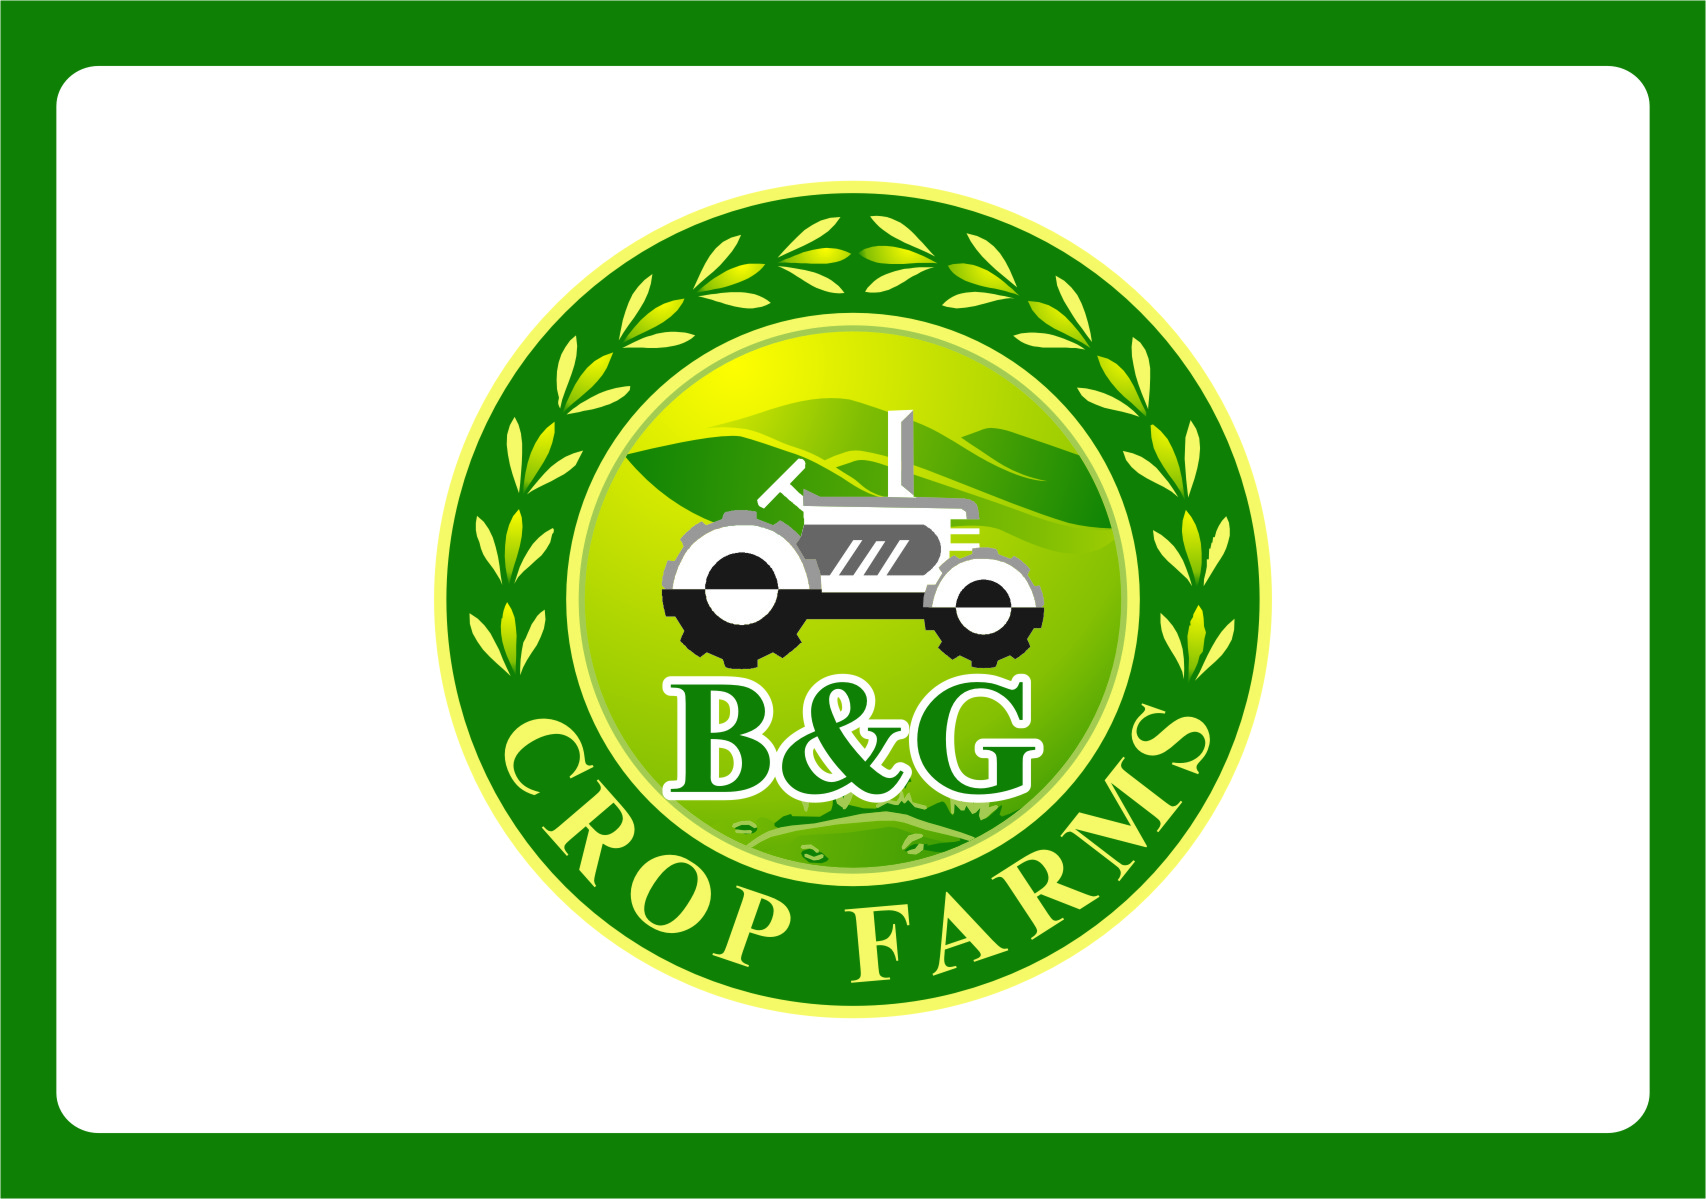 Logo Design by Ngepet_art - Entry No. 45 in the Logo Design Contest Artistic Logo Design for B & G Crop Farms.